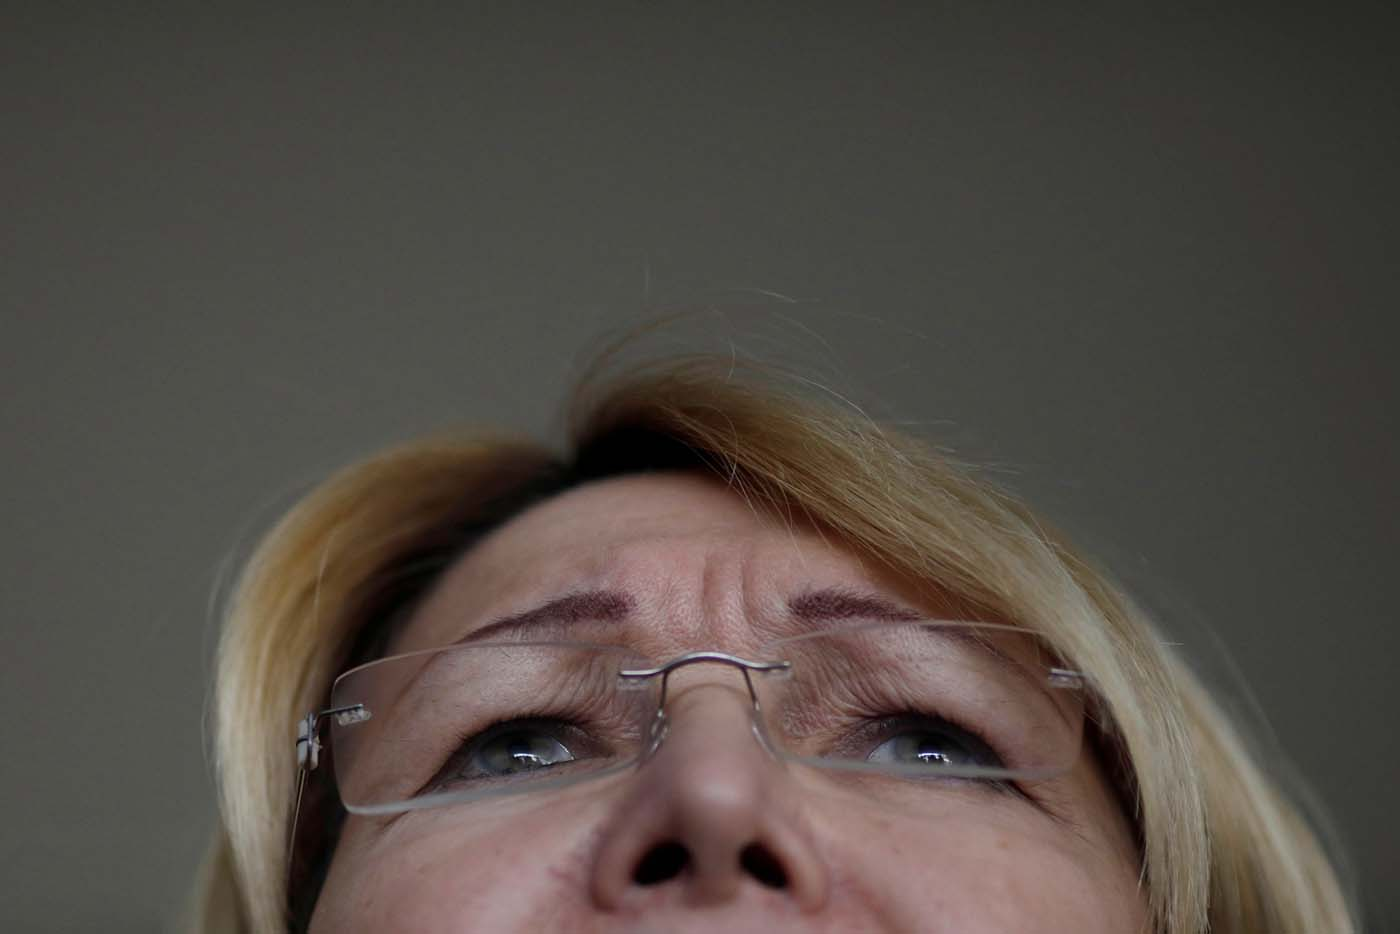 Venezuela's former chief prosecutor Luisa Ortega Diaz speaks during a news conference after a meeting with Brazil's Foreign Minister Aloysio Nunes Ferreira, in Brasilia, Brazil August 23, 2017. REUTERS/Ueslei Marcelino